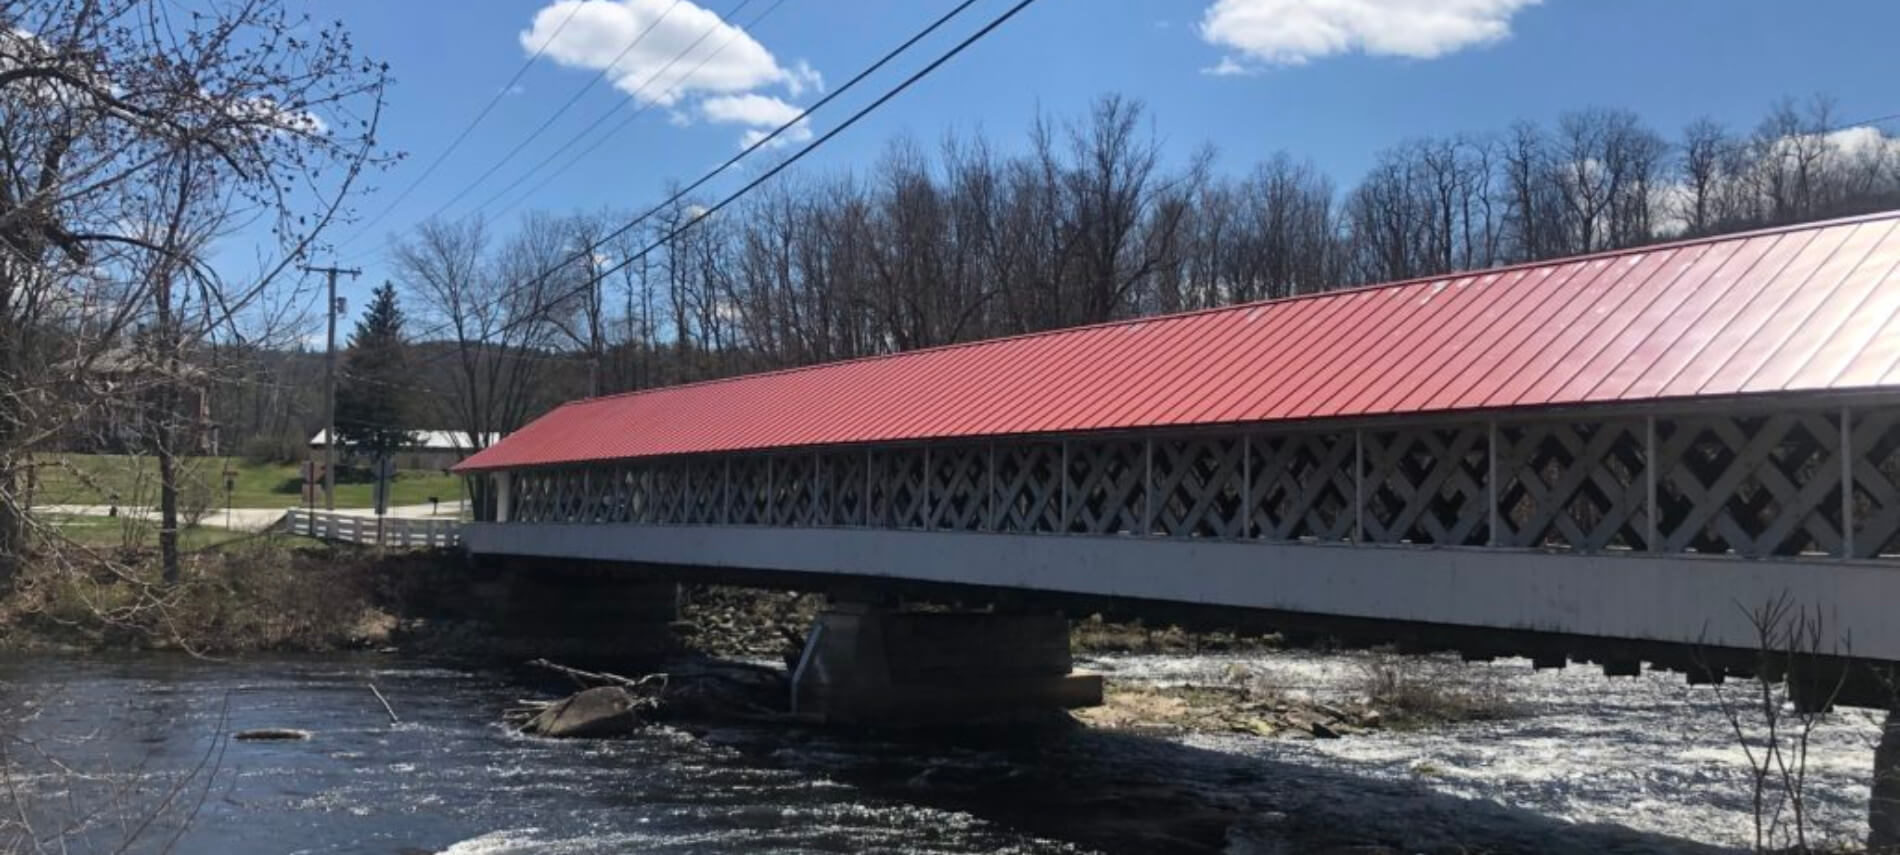 Covered bridge with red metal roof with wooden sides over creek under clear blue skies with fluffy clouds.